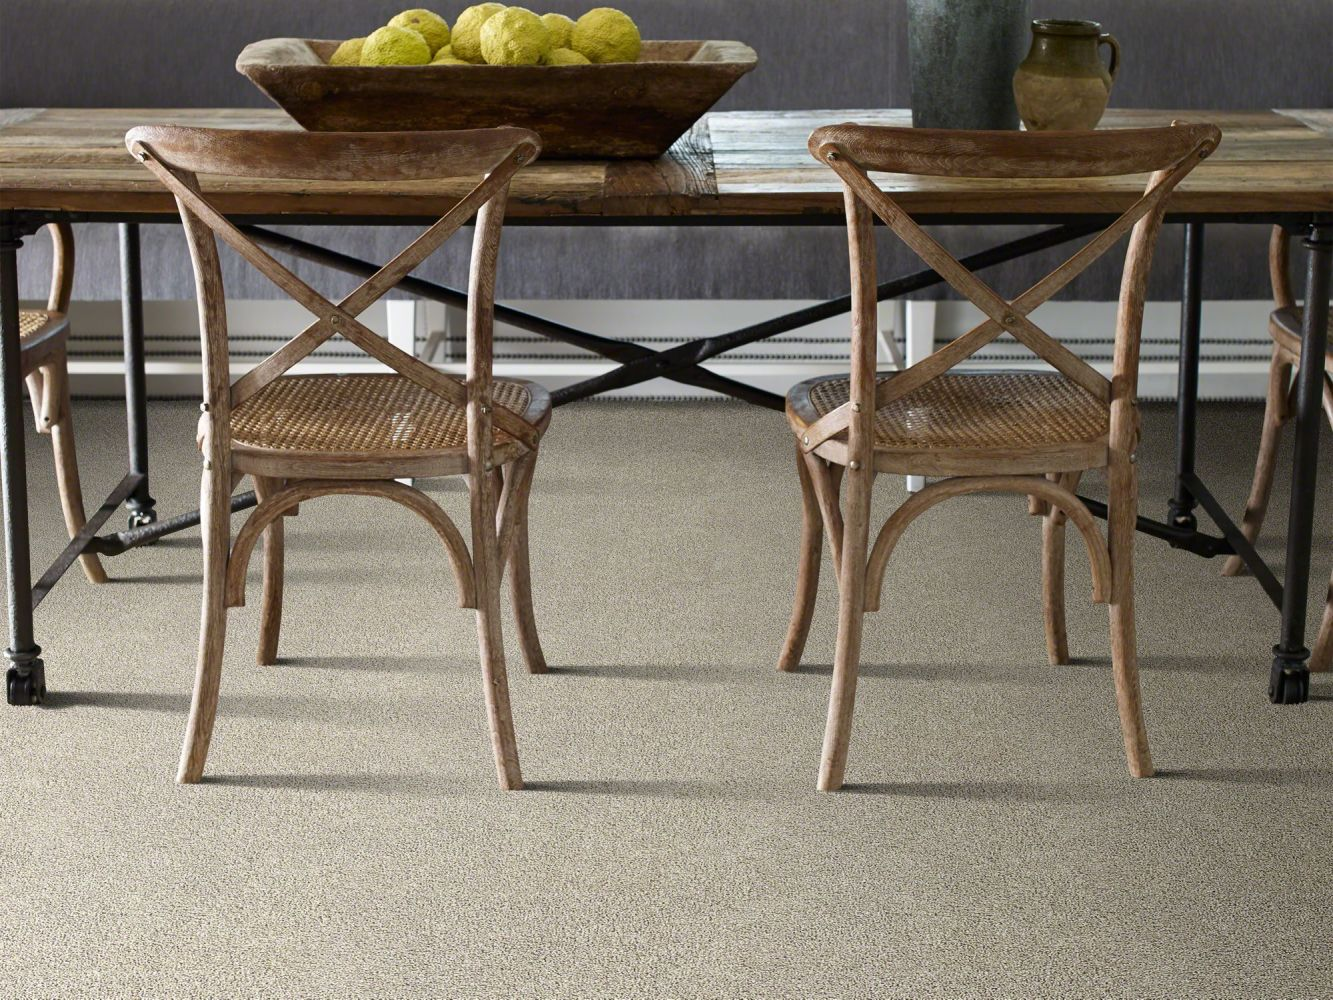 Shaw Floors Gametime Sandstone GF00720_E0322